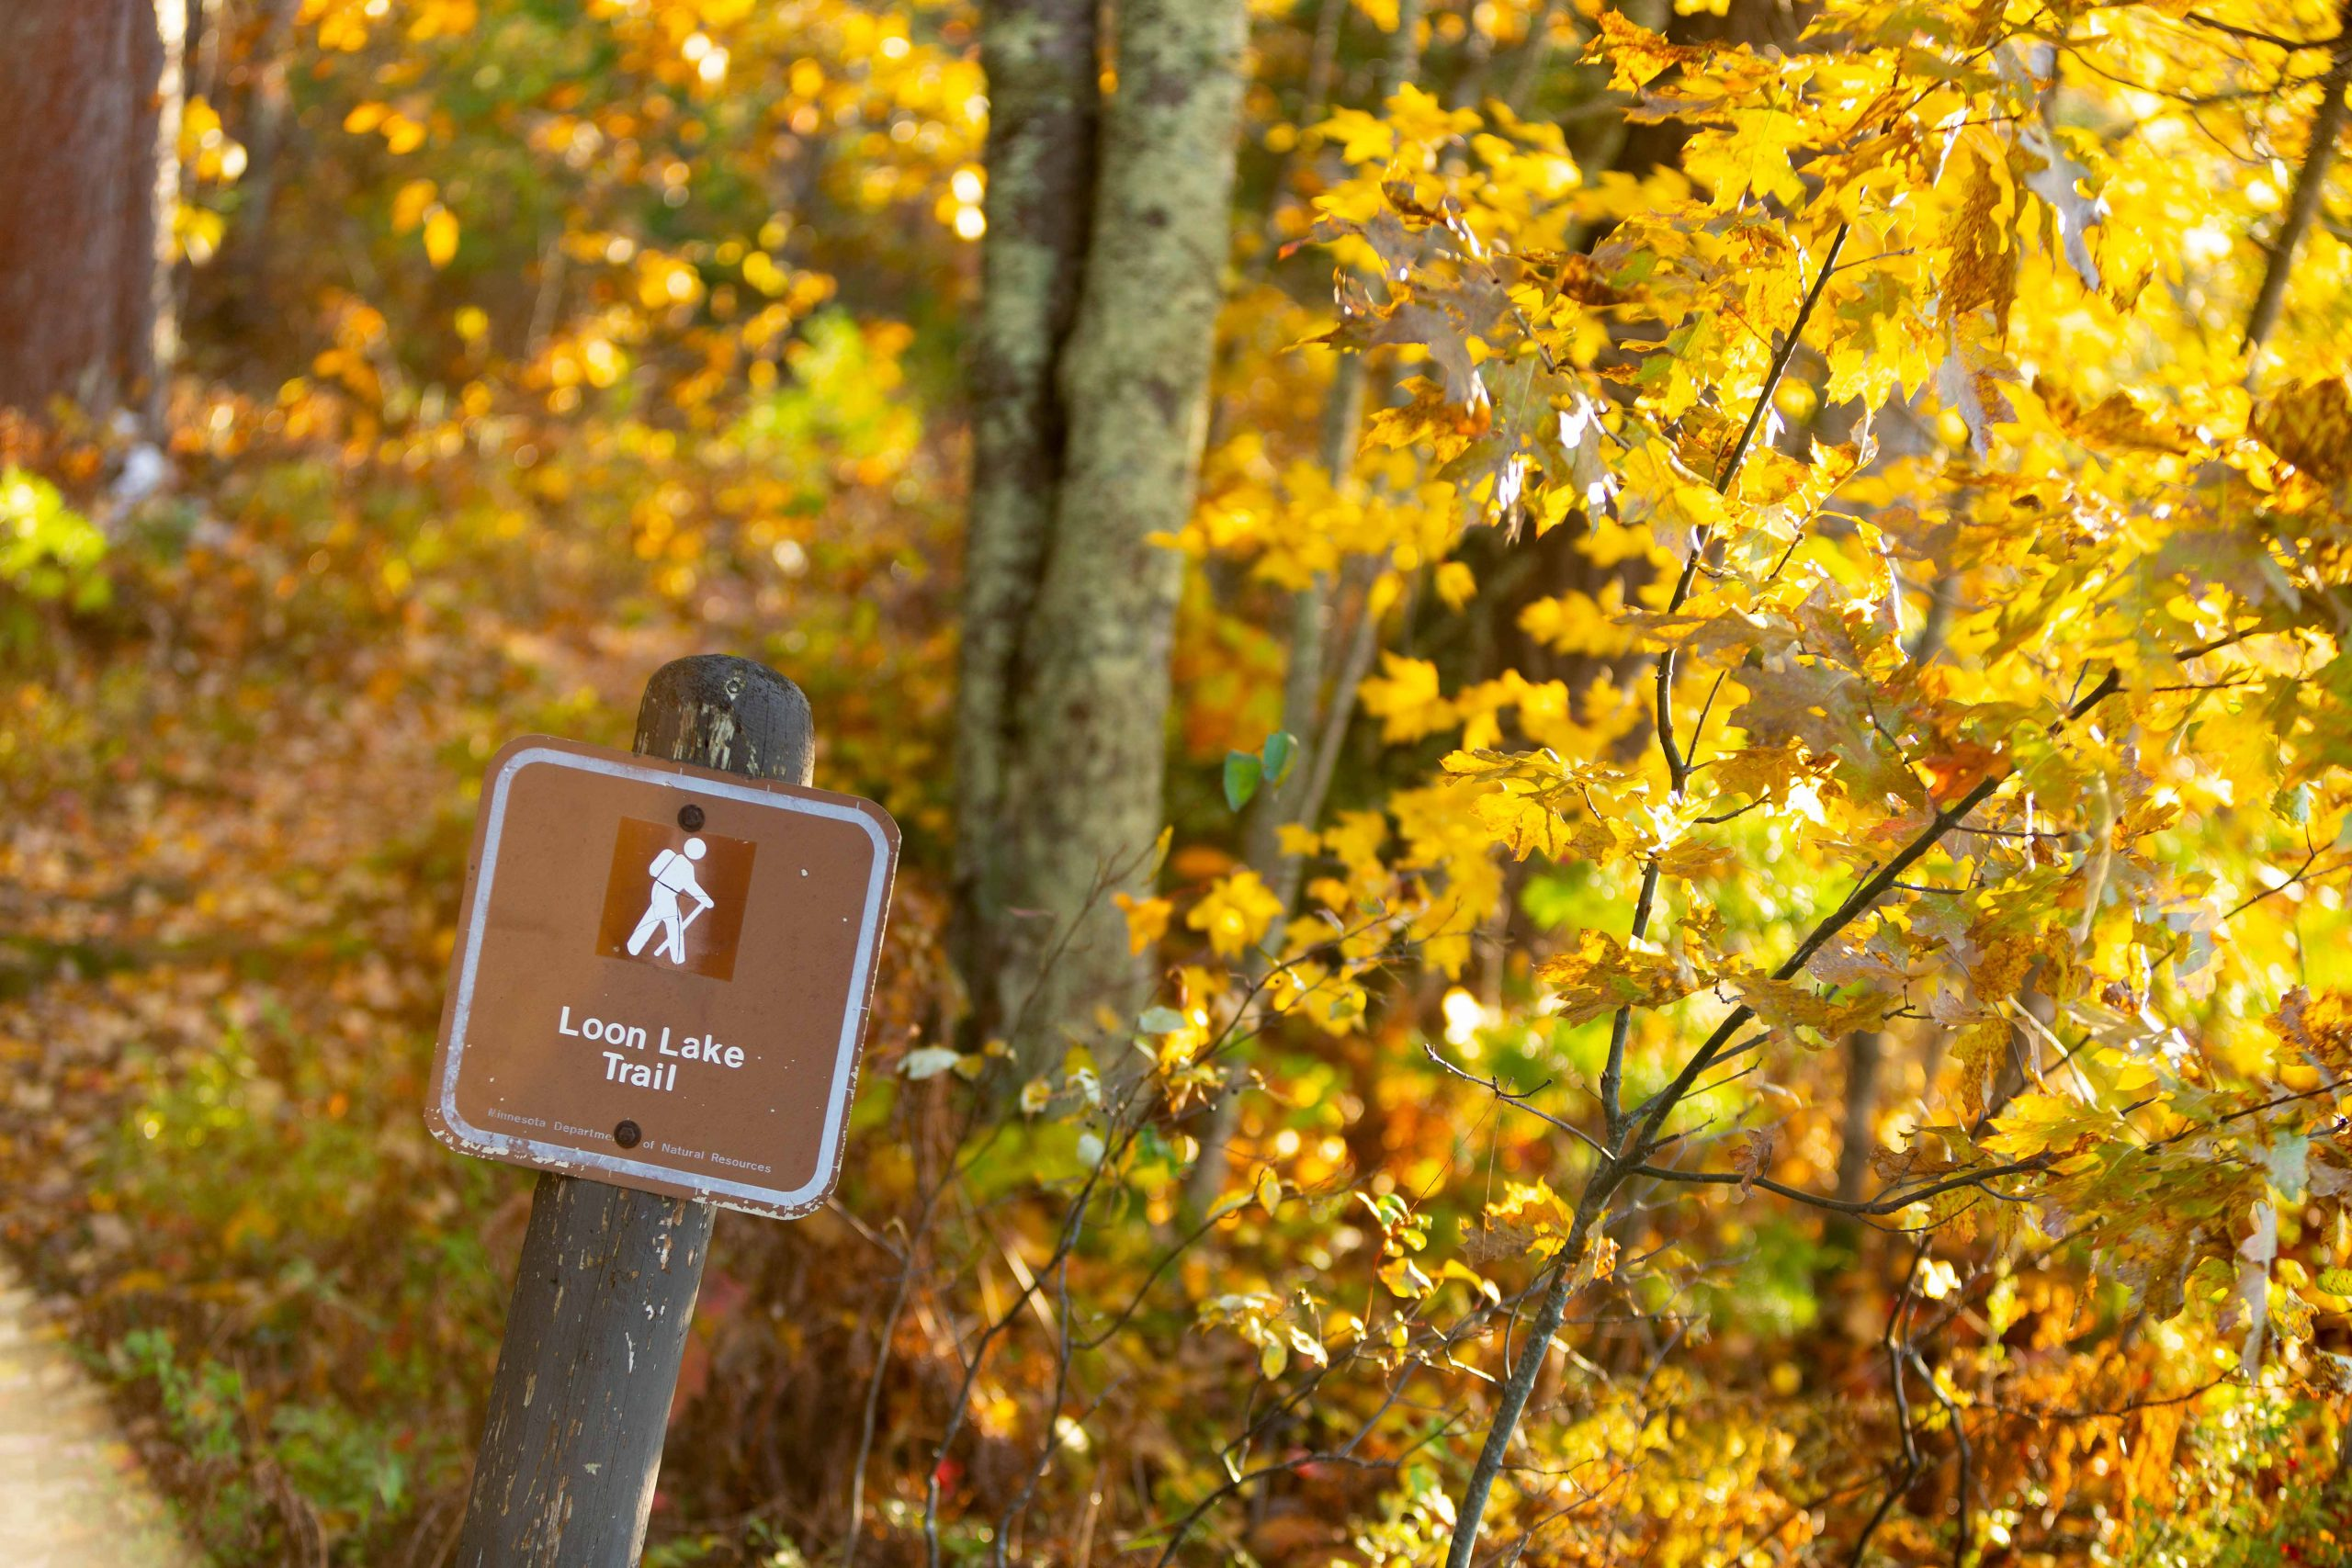 McGregor_Fall_Hiking_Trail_Savanna_5742_Web